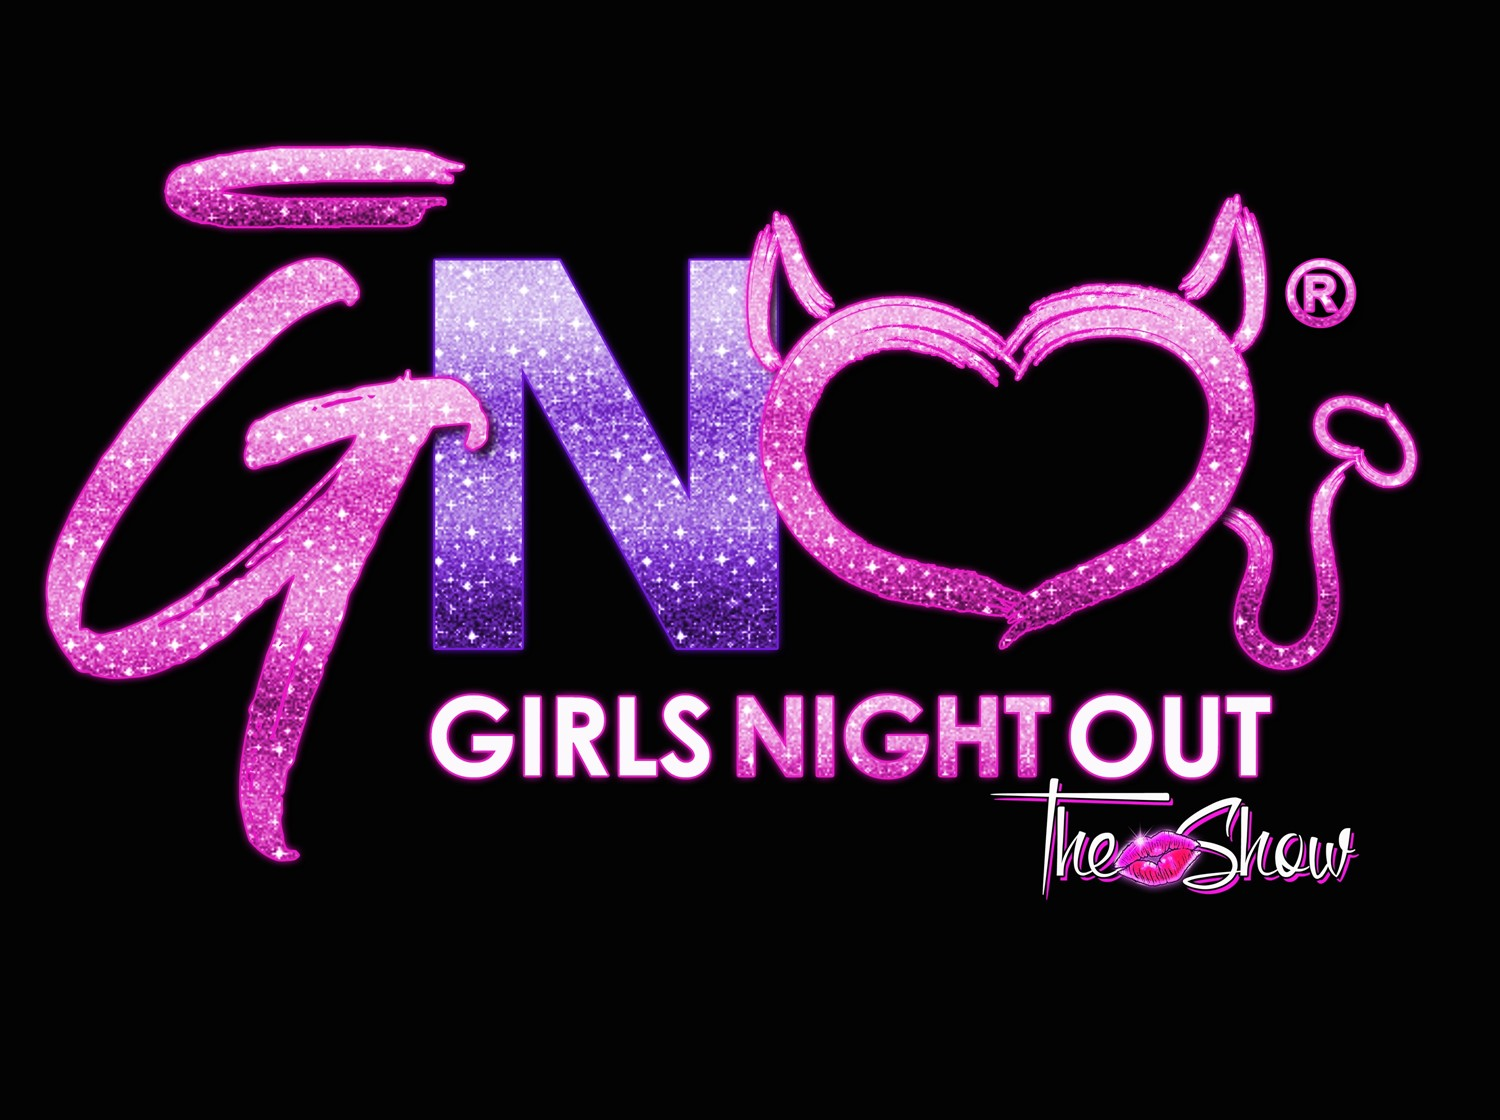 Younger's Irish Tavern (21+) Romeo, MI on Apr 22, 20:00@Younger's Irish Tavern - Buy tickets and Get information on Girls Night Out the Show tickets.girlsnightouttheshow.com